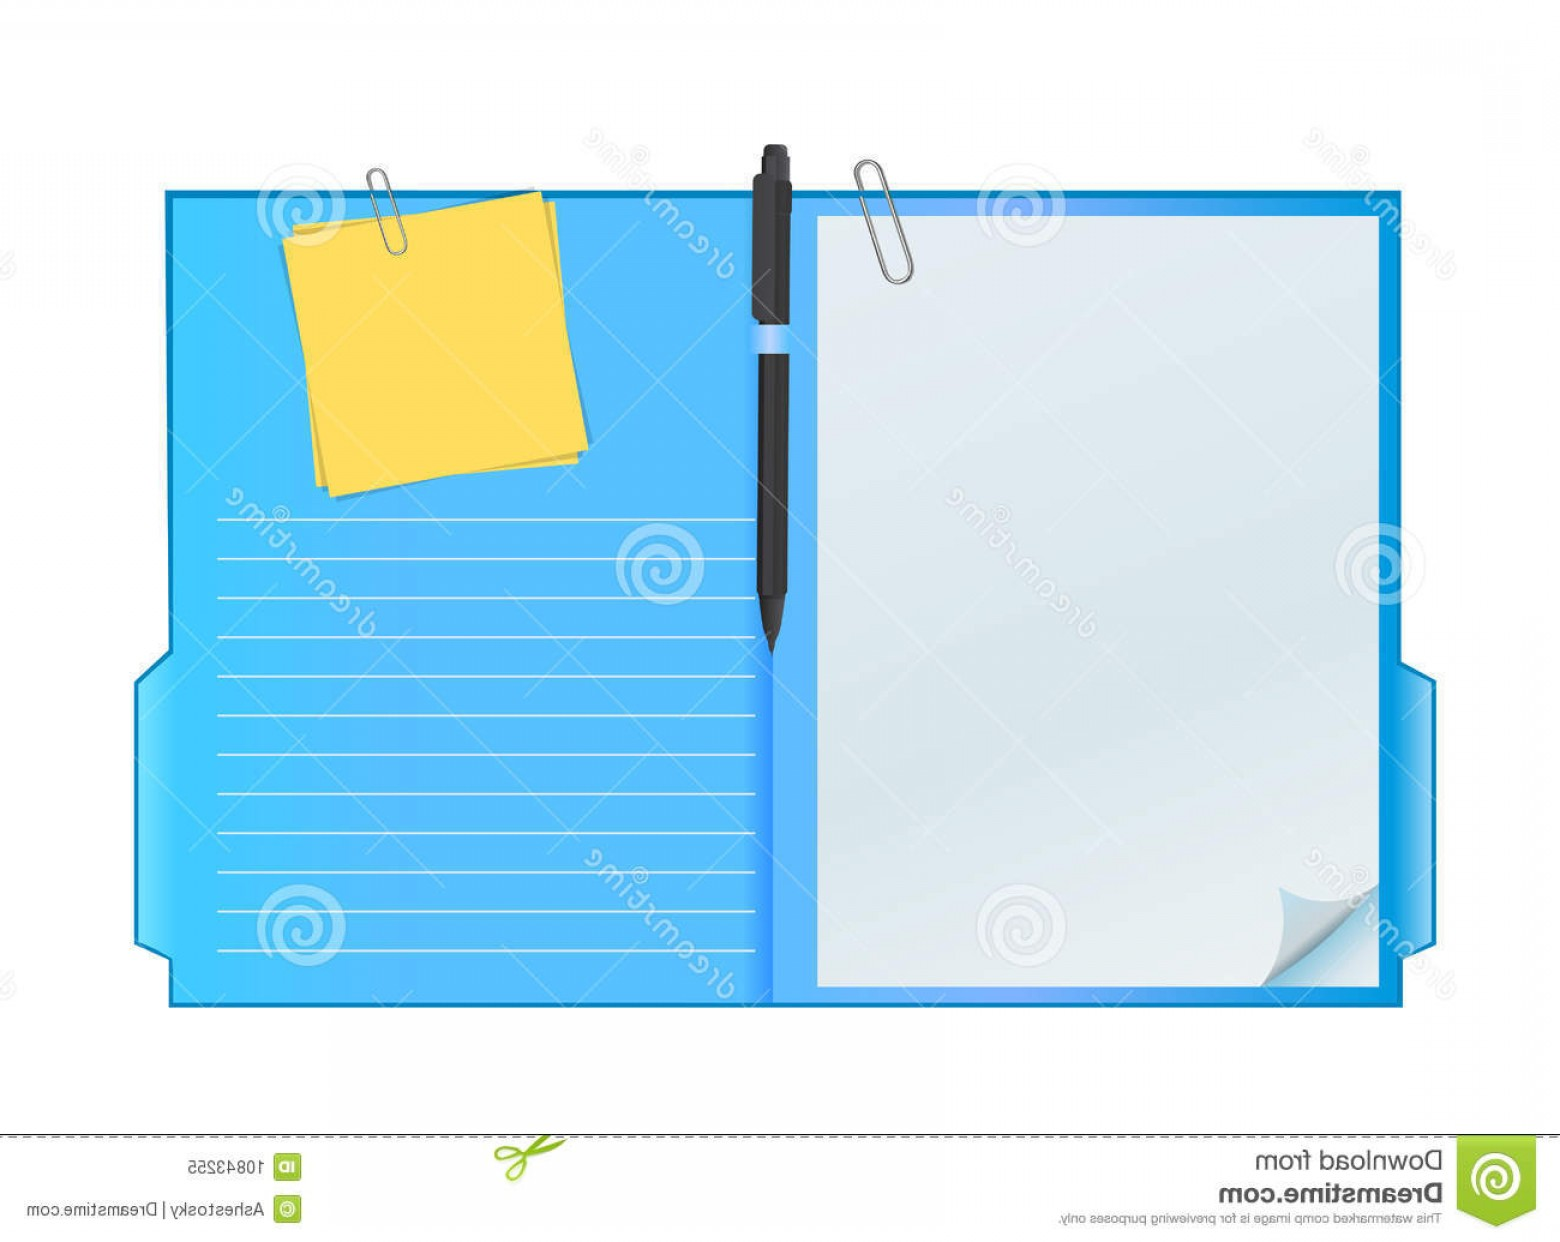 Folder Tab Vectors: Royalty Free Stock Photos Vector Clipboard Sheets Paper Pen Image